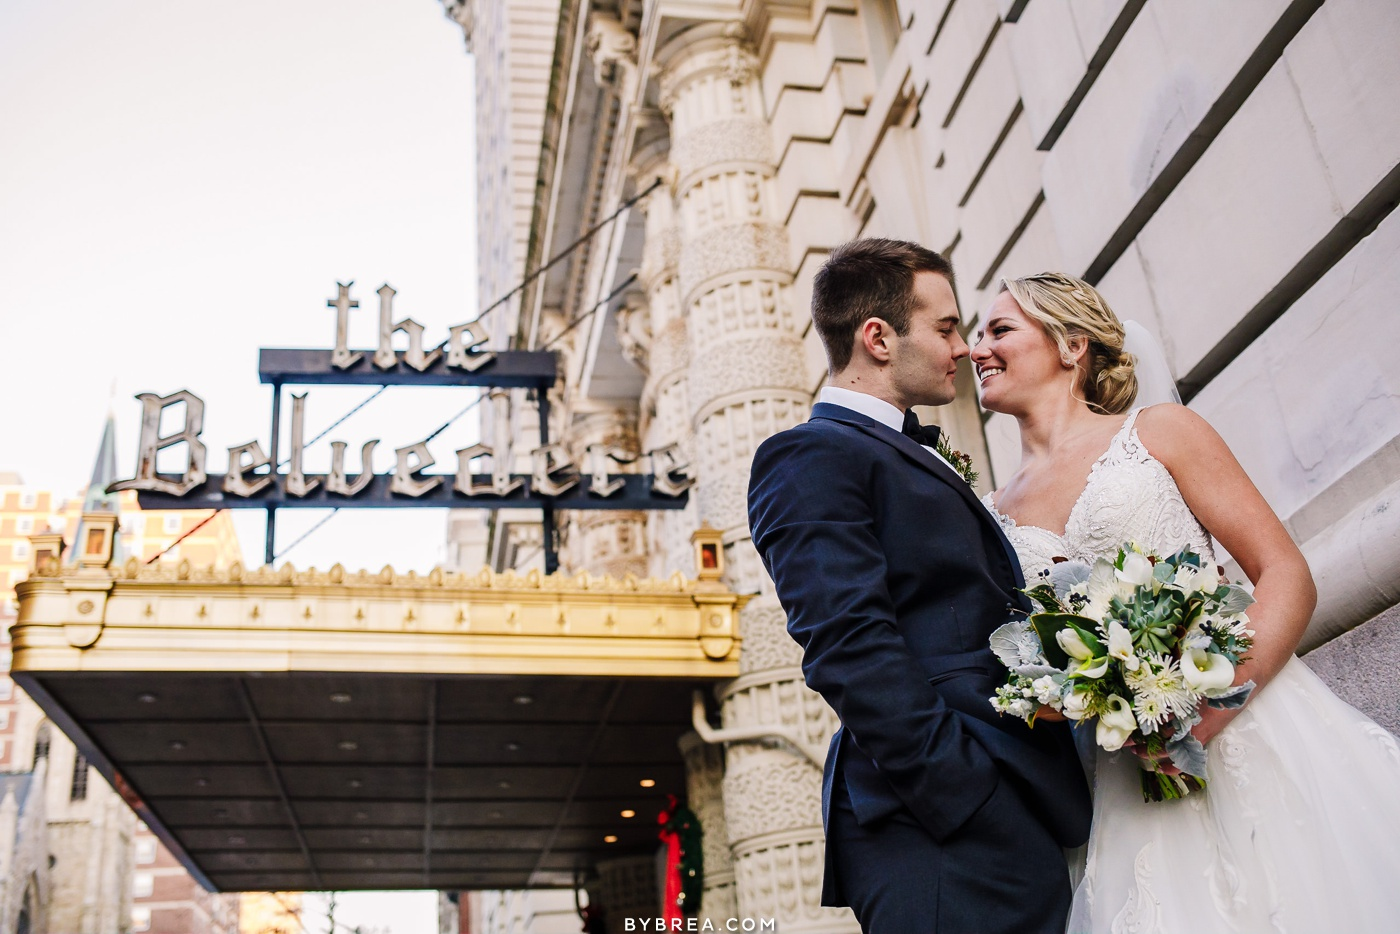 Couple's portraits during wedding at the Belvedere Hotel in Baltimore